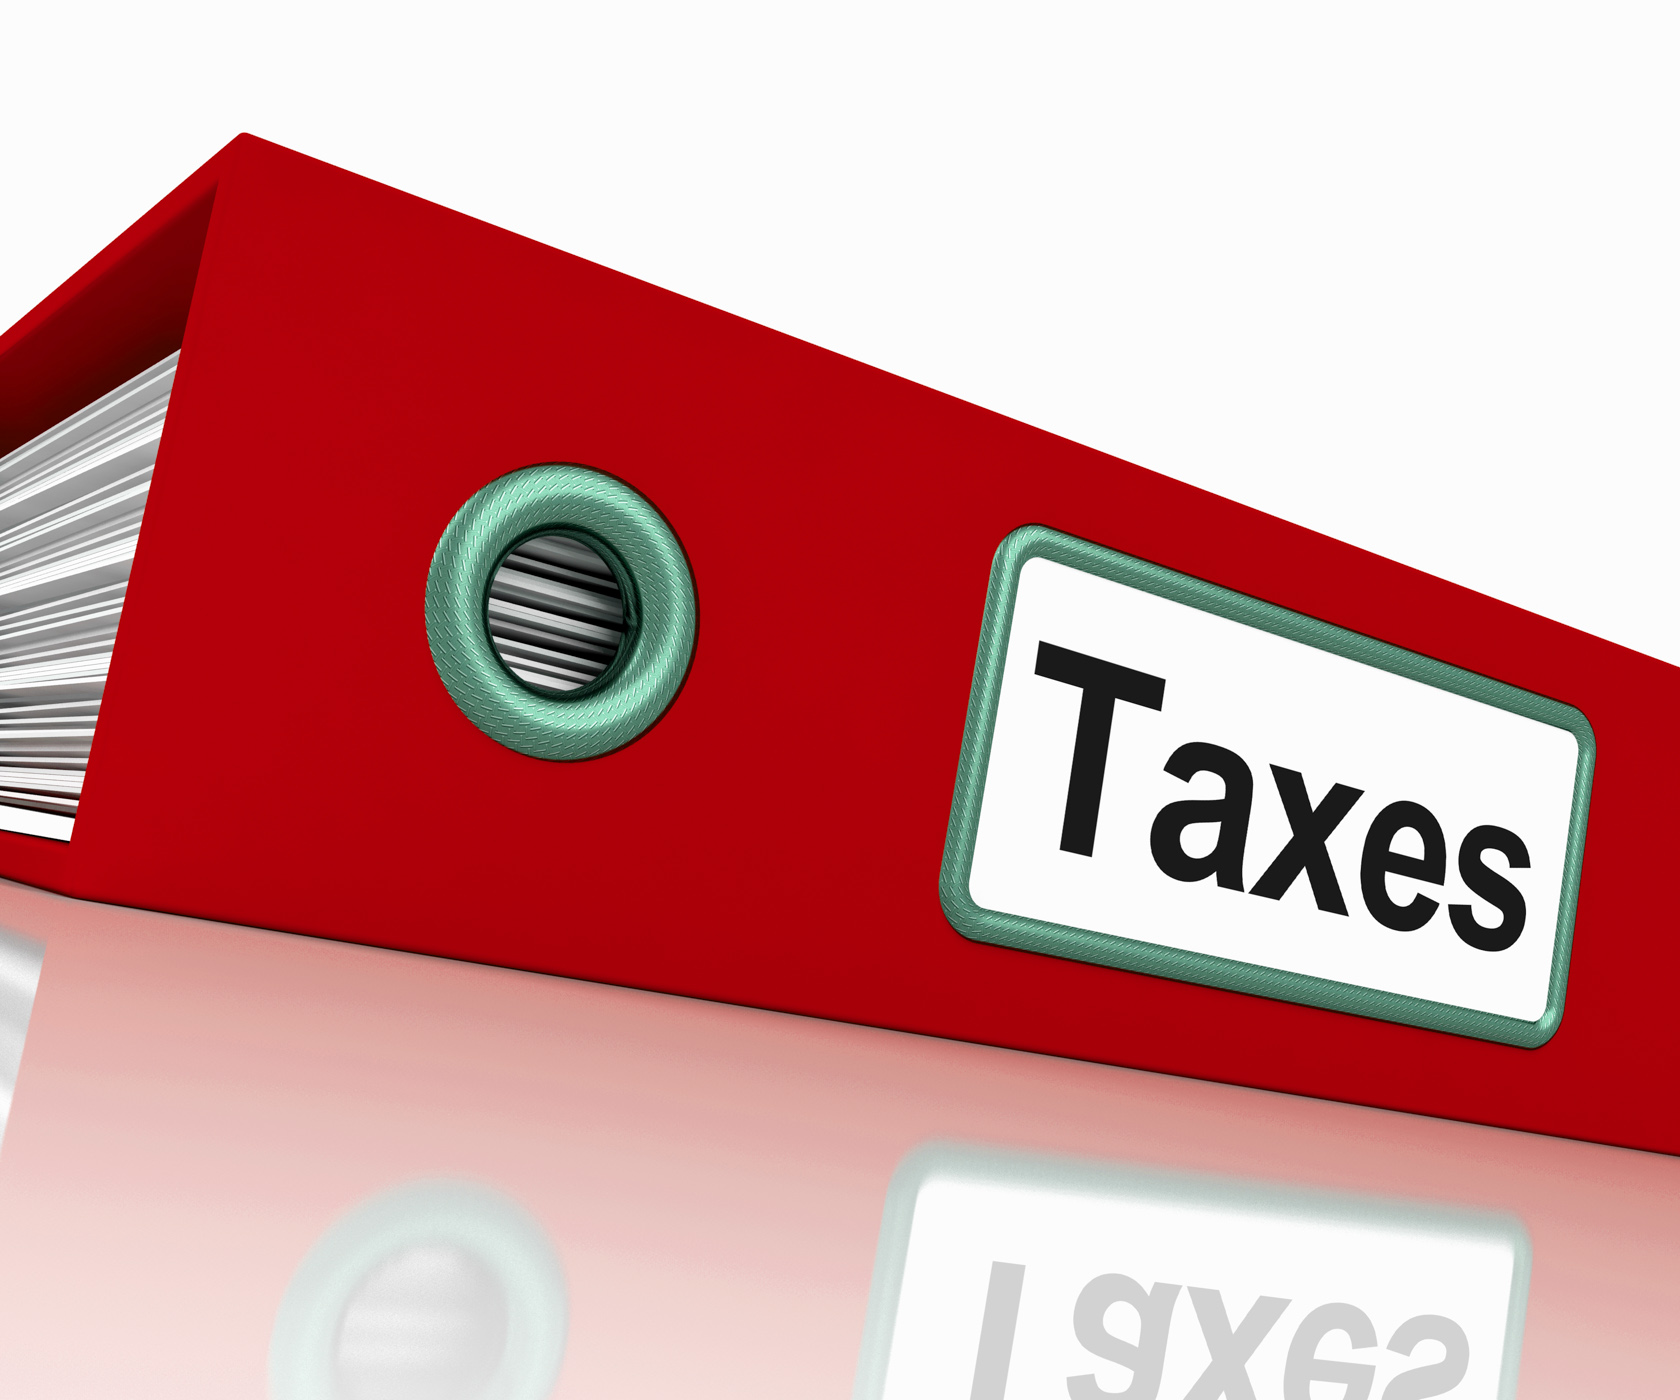 Taxes file contains taxation reports and documents photo